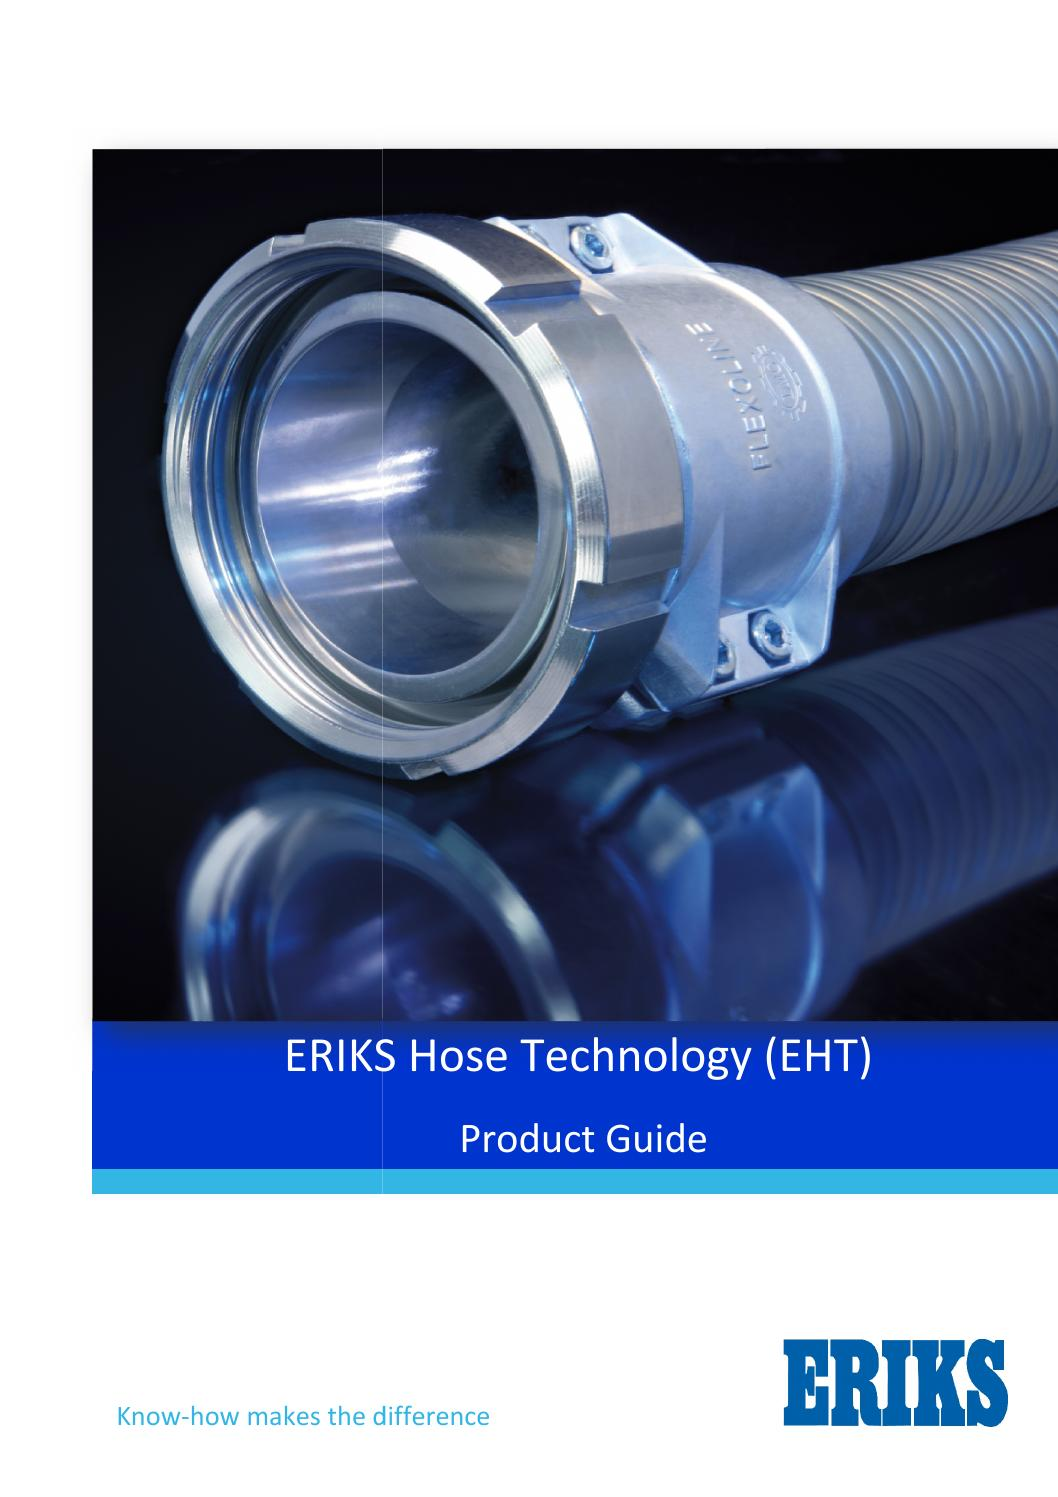 ERIKS Hose Technology EHT Product guide by carll  issuu